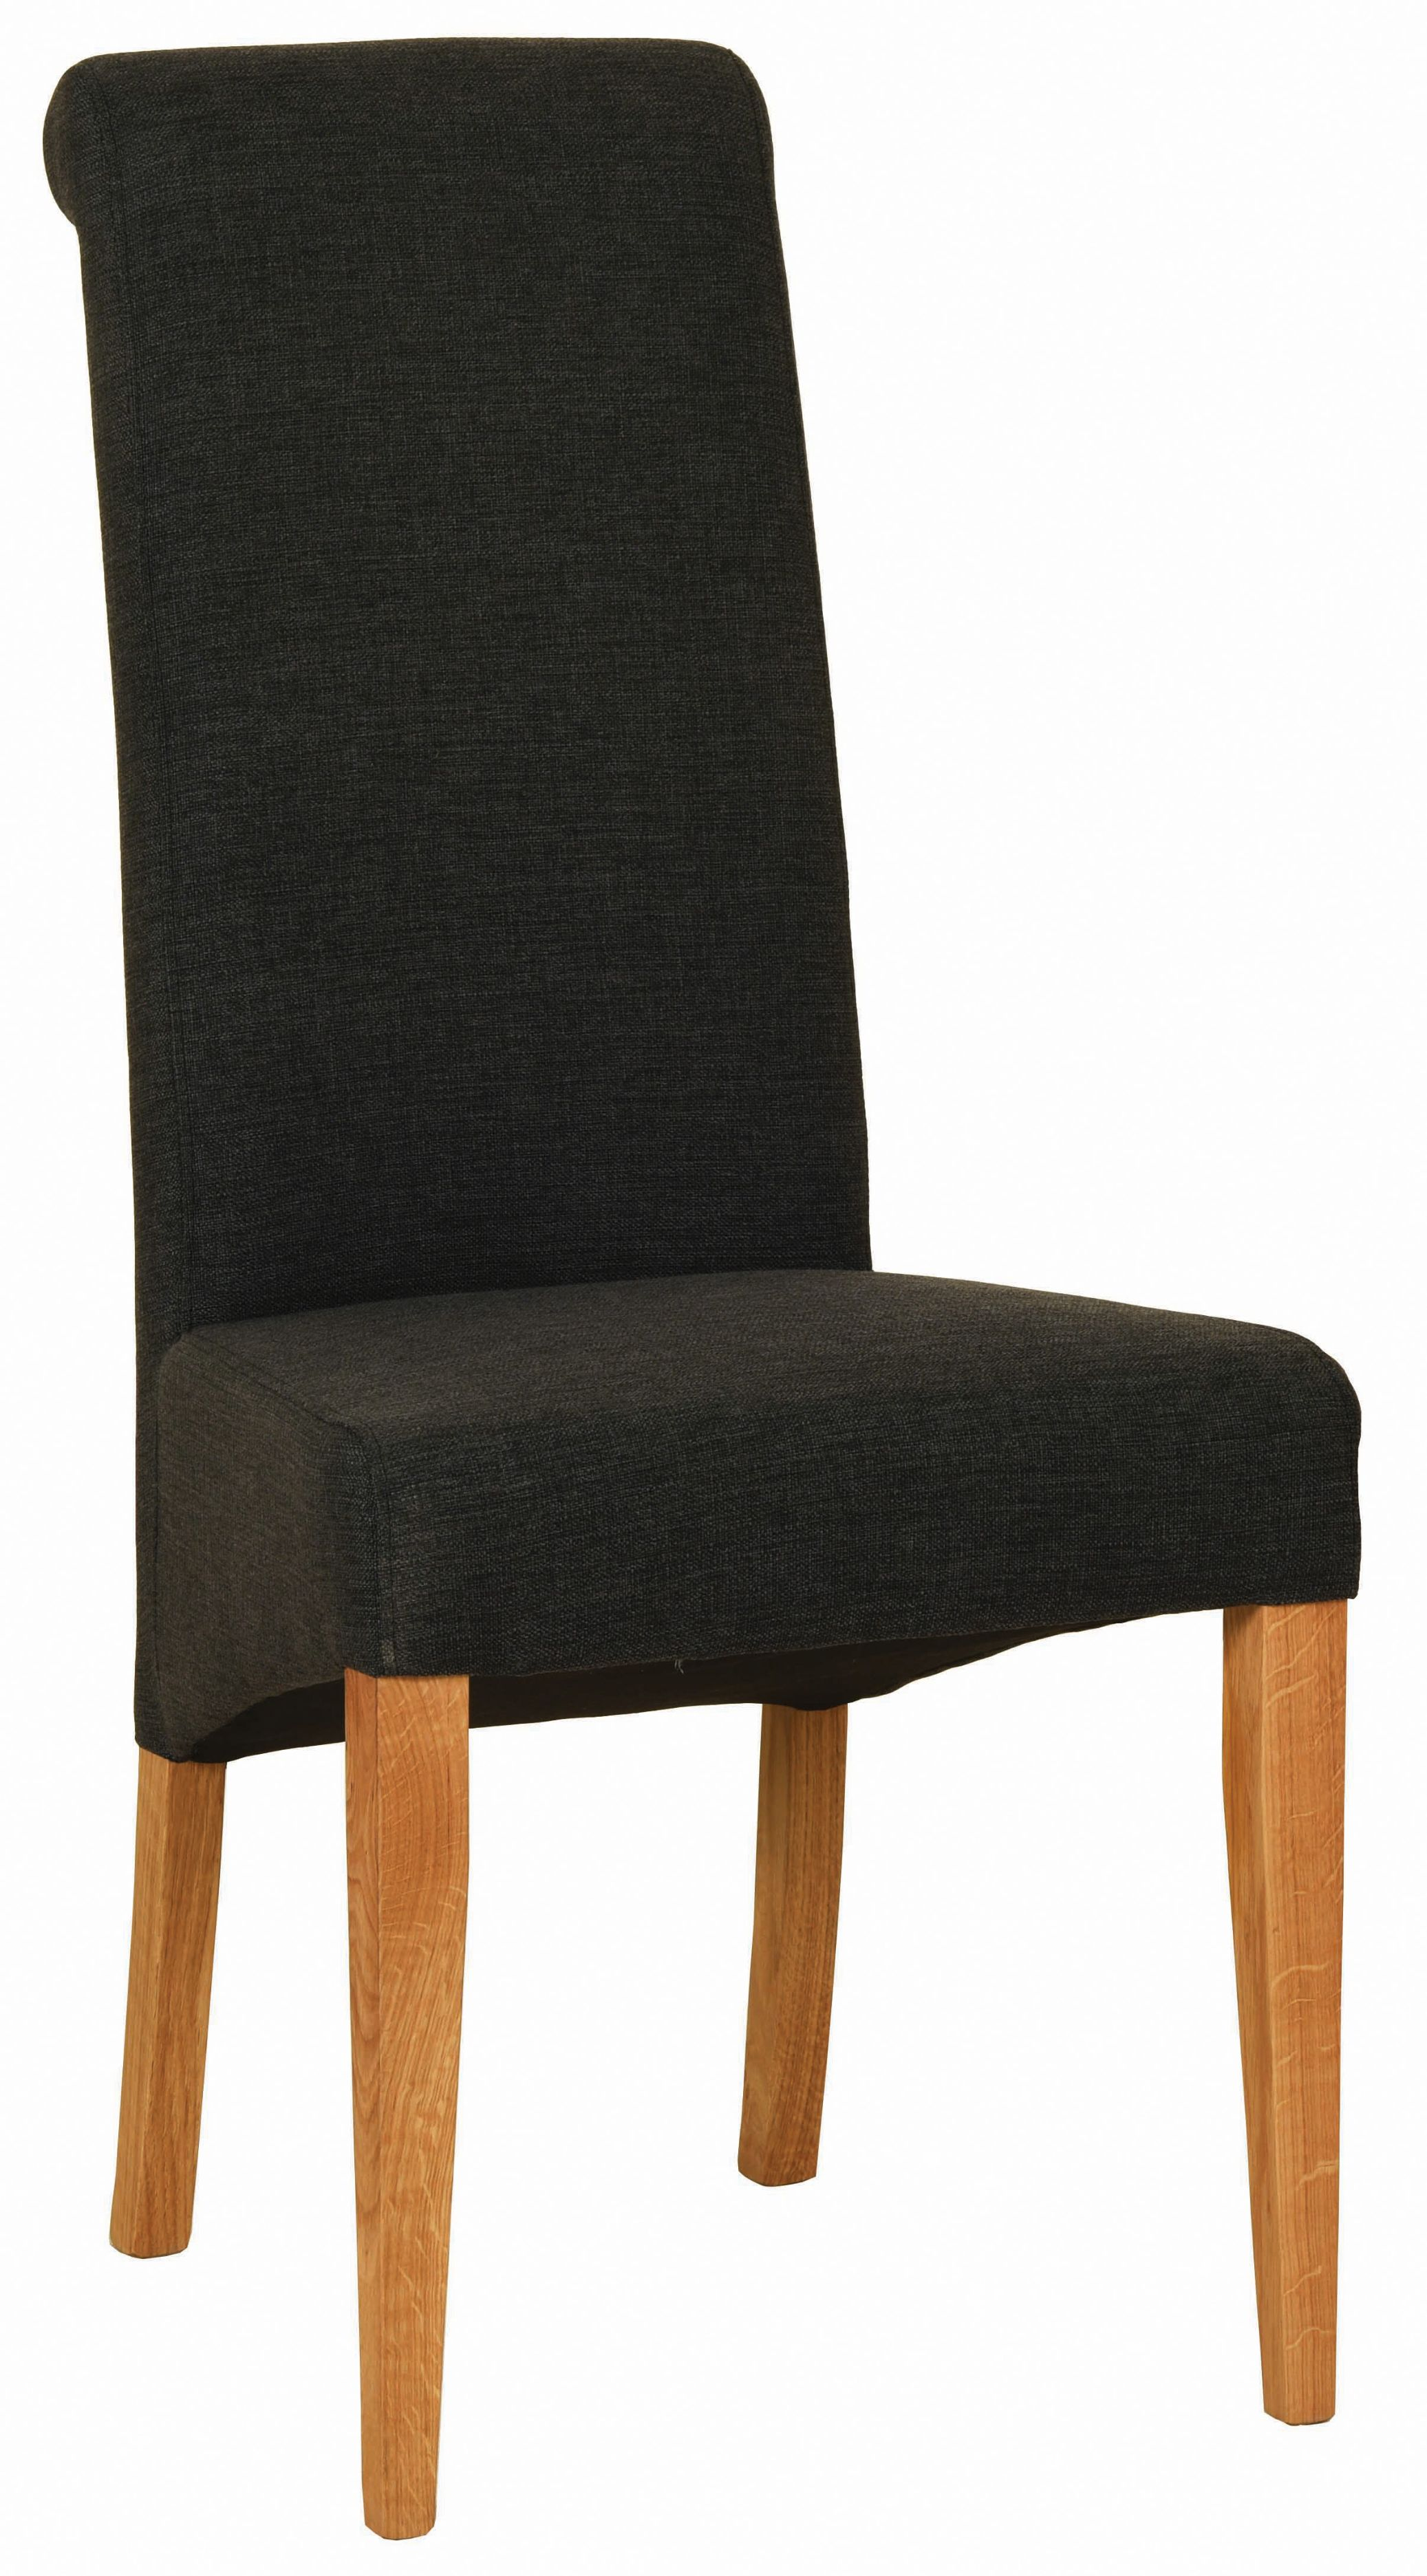 BEVERLEY OAK Charcoal Fabric Dining Chair